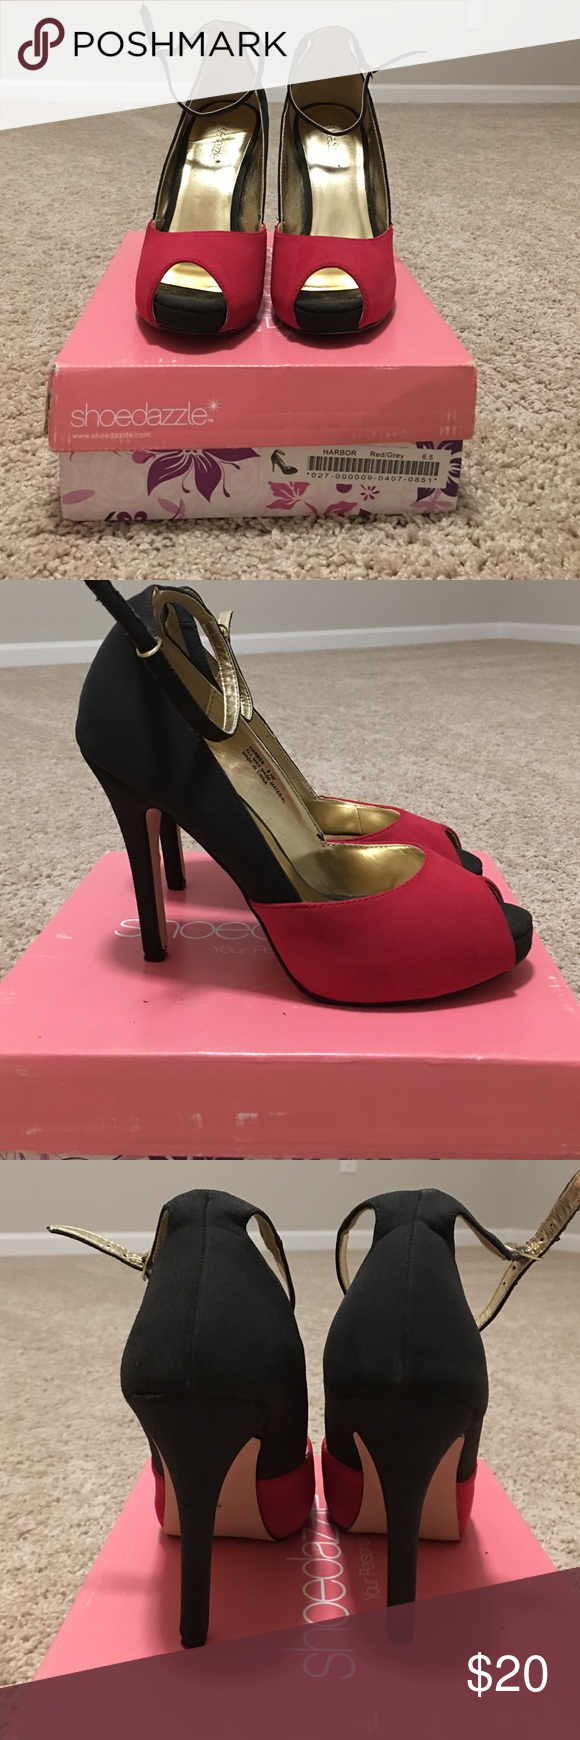 Gray and red ankle strap heels. Size 8.5. Gray and red ankle strap peep toe heels. Heel is 4 inches. Shoedazzle. Size 8.5. Only worn twice. In excellent condition. Shoe Dazzle Shoes Heels